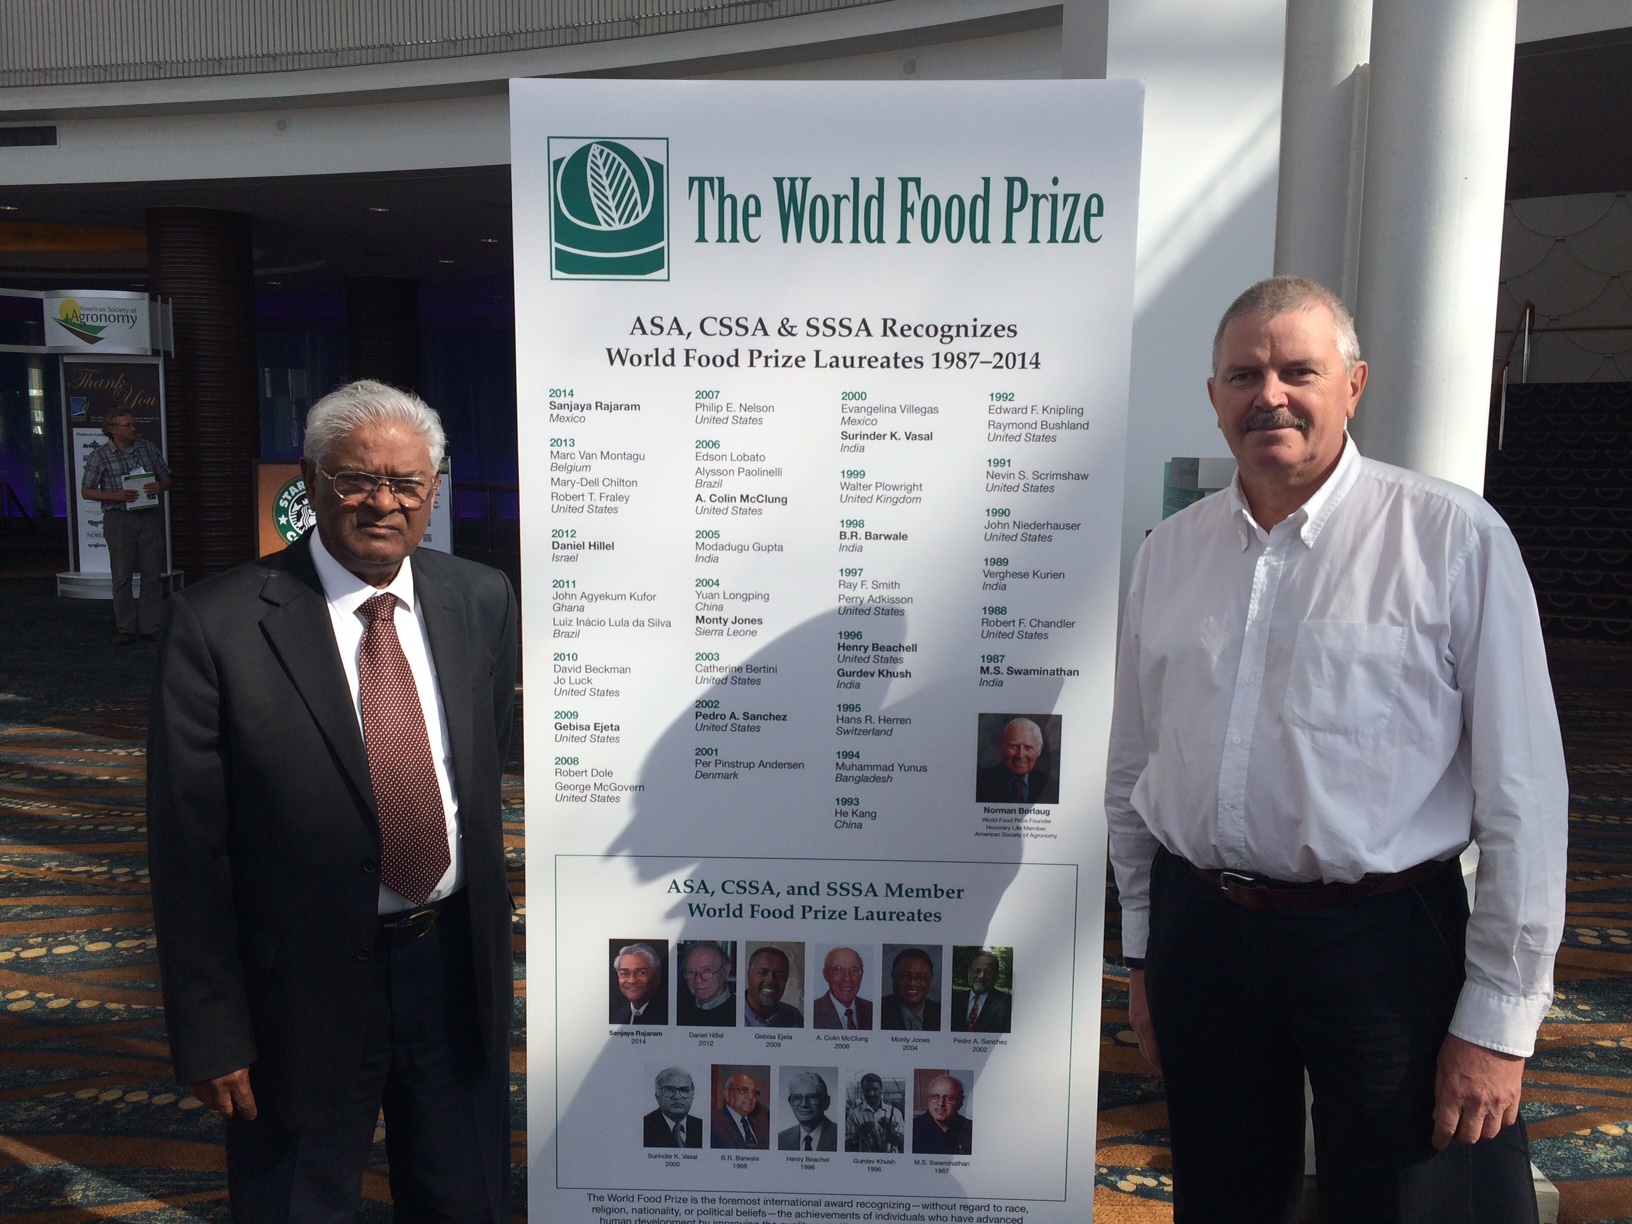 Alex Morgunov (right) with World Food Prize laureate and former CIMMYT wheat program director Sanjaya Rajaram. (Photo: Alex Morgunov/CIMMYT)